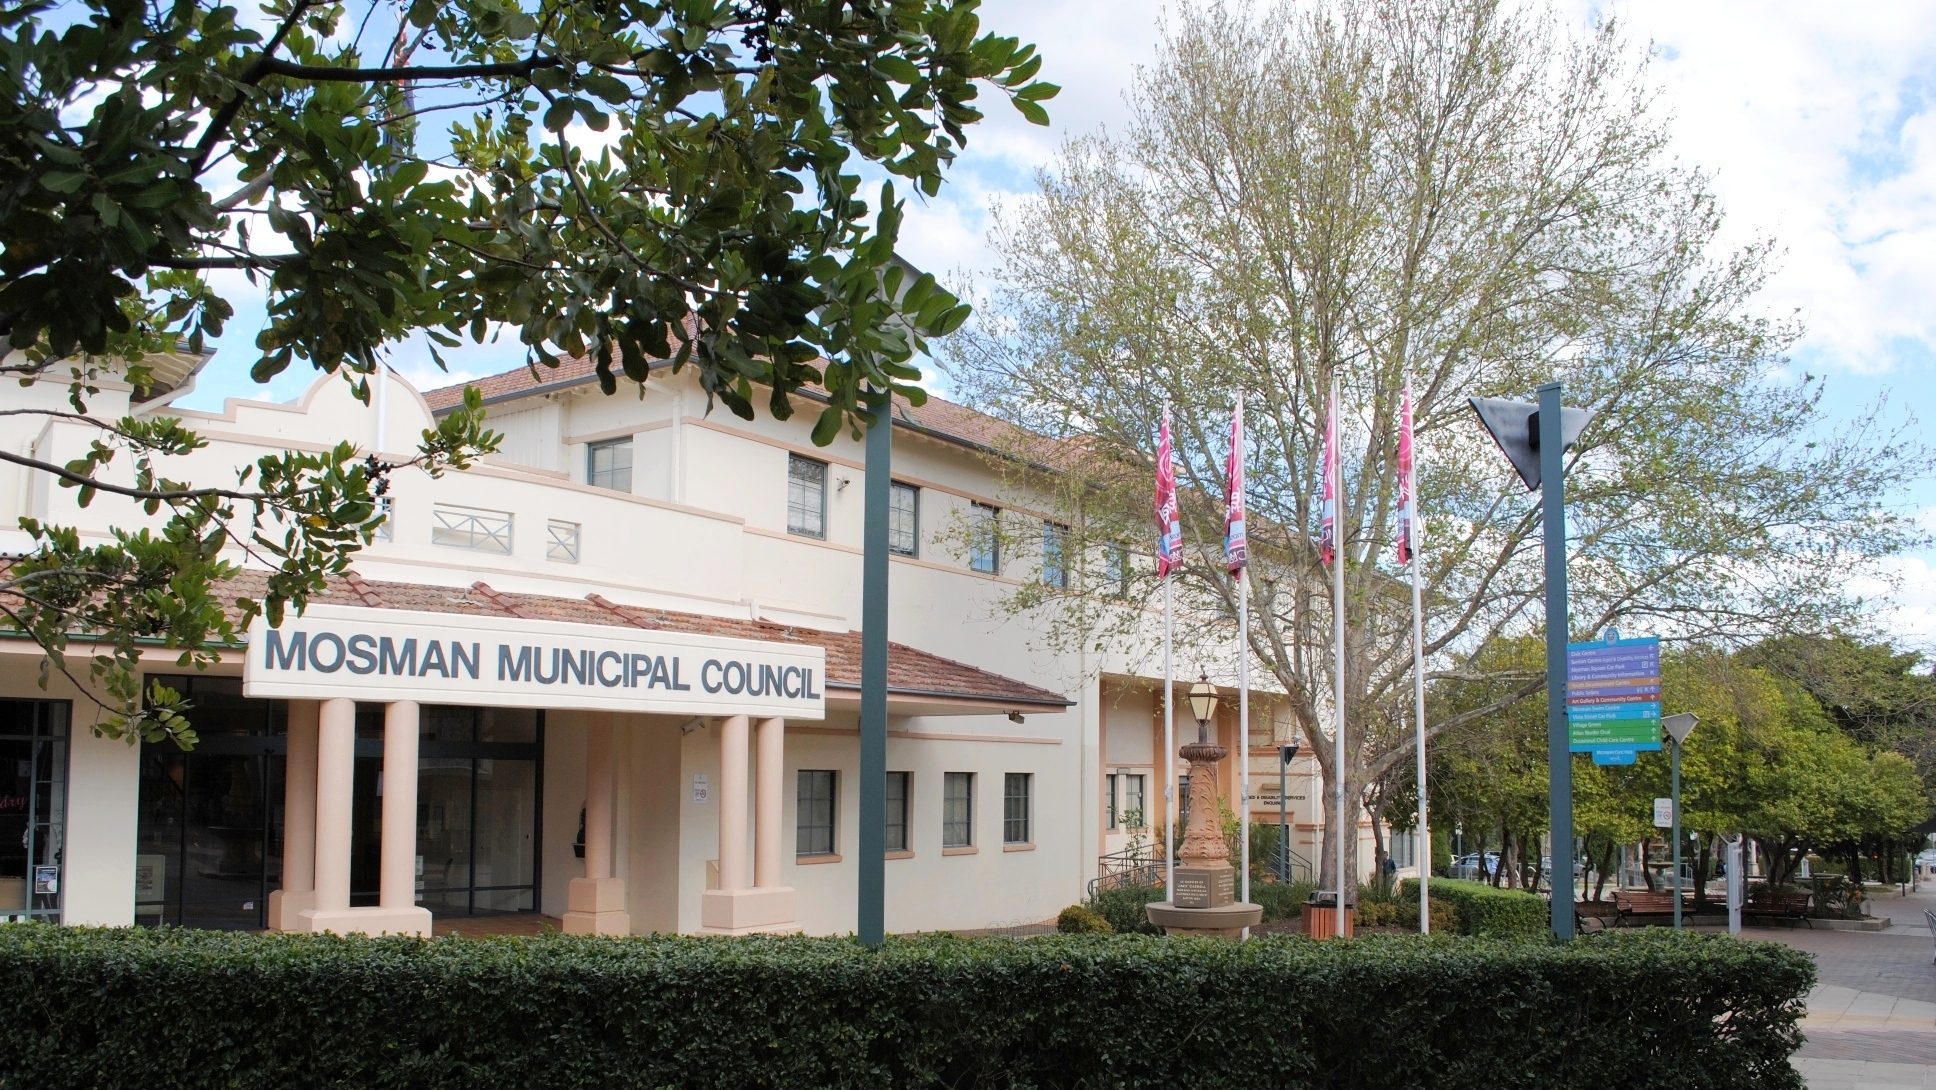 Mosman Civic Centre